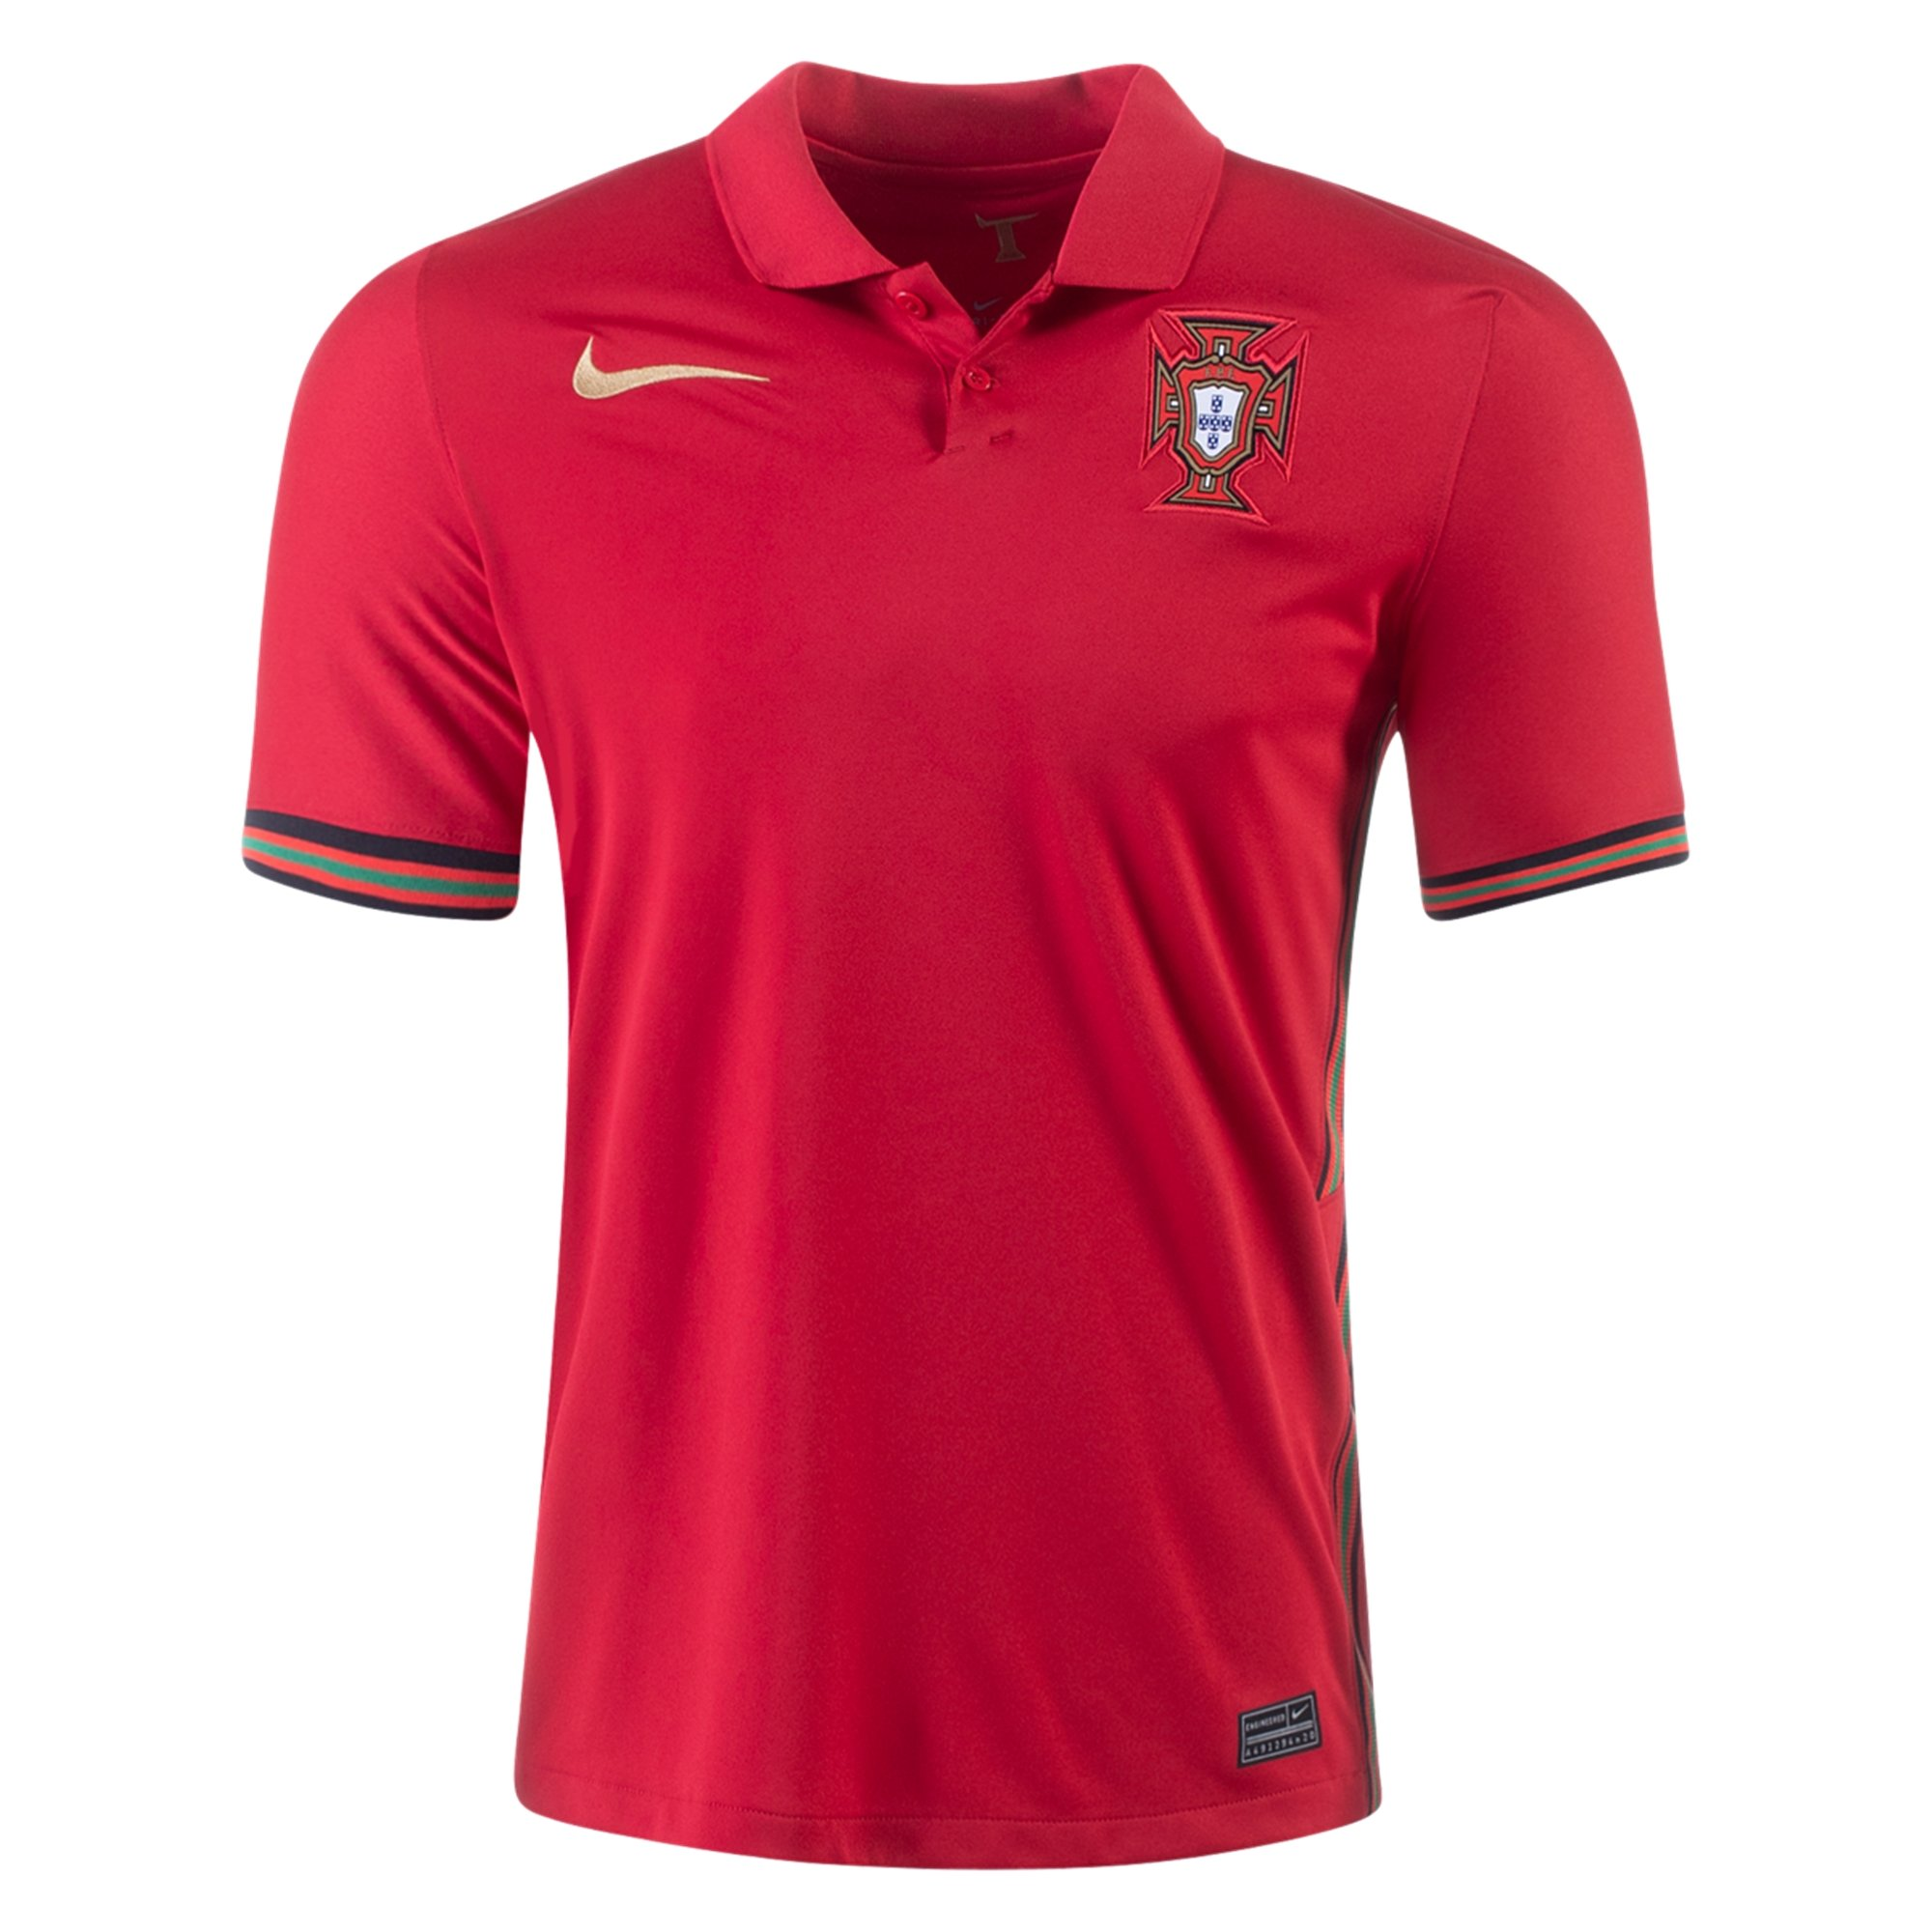 Nike Replica Portugal Home Jersey 2020